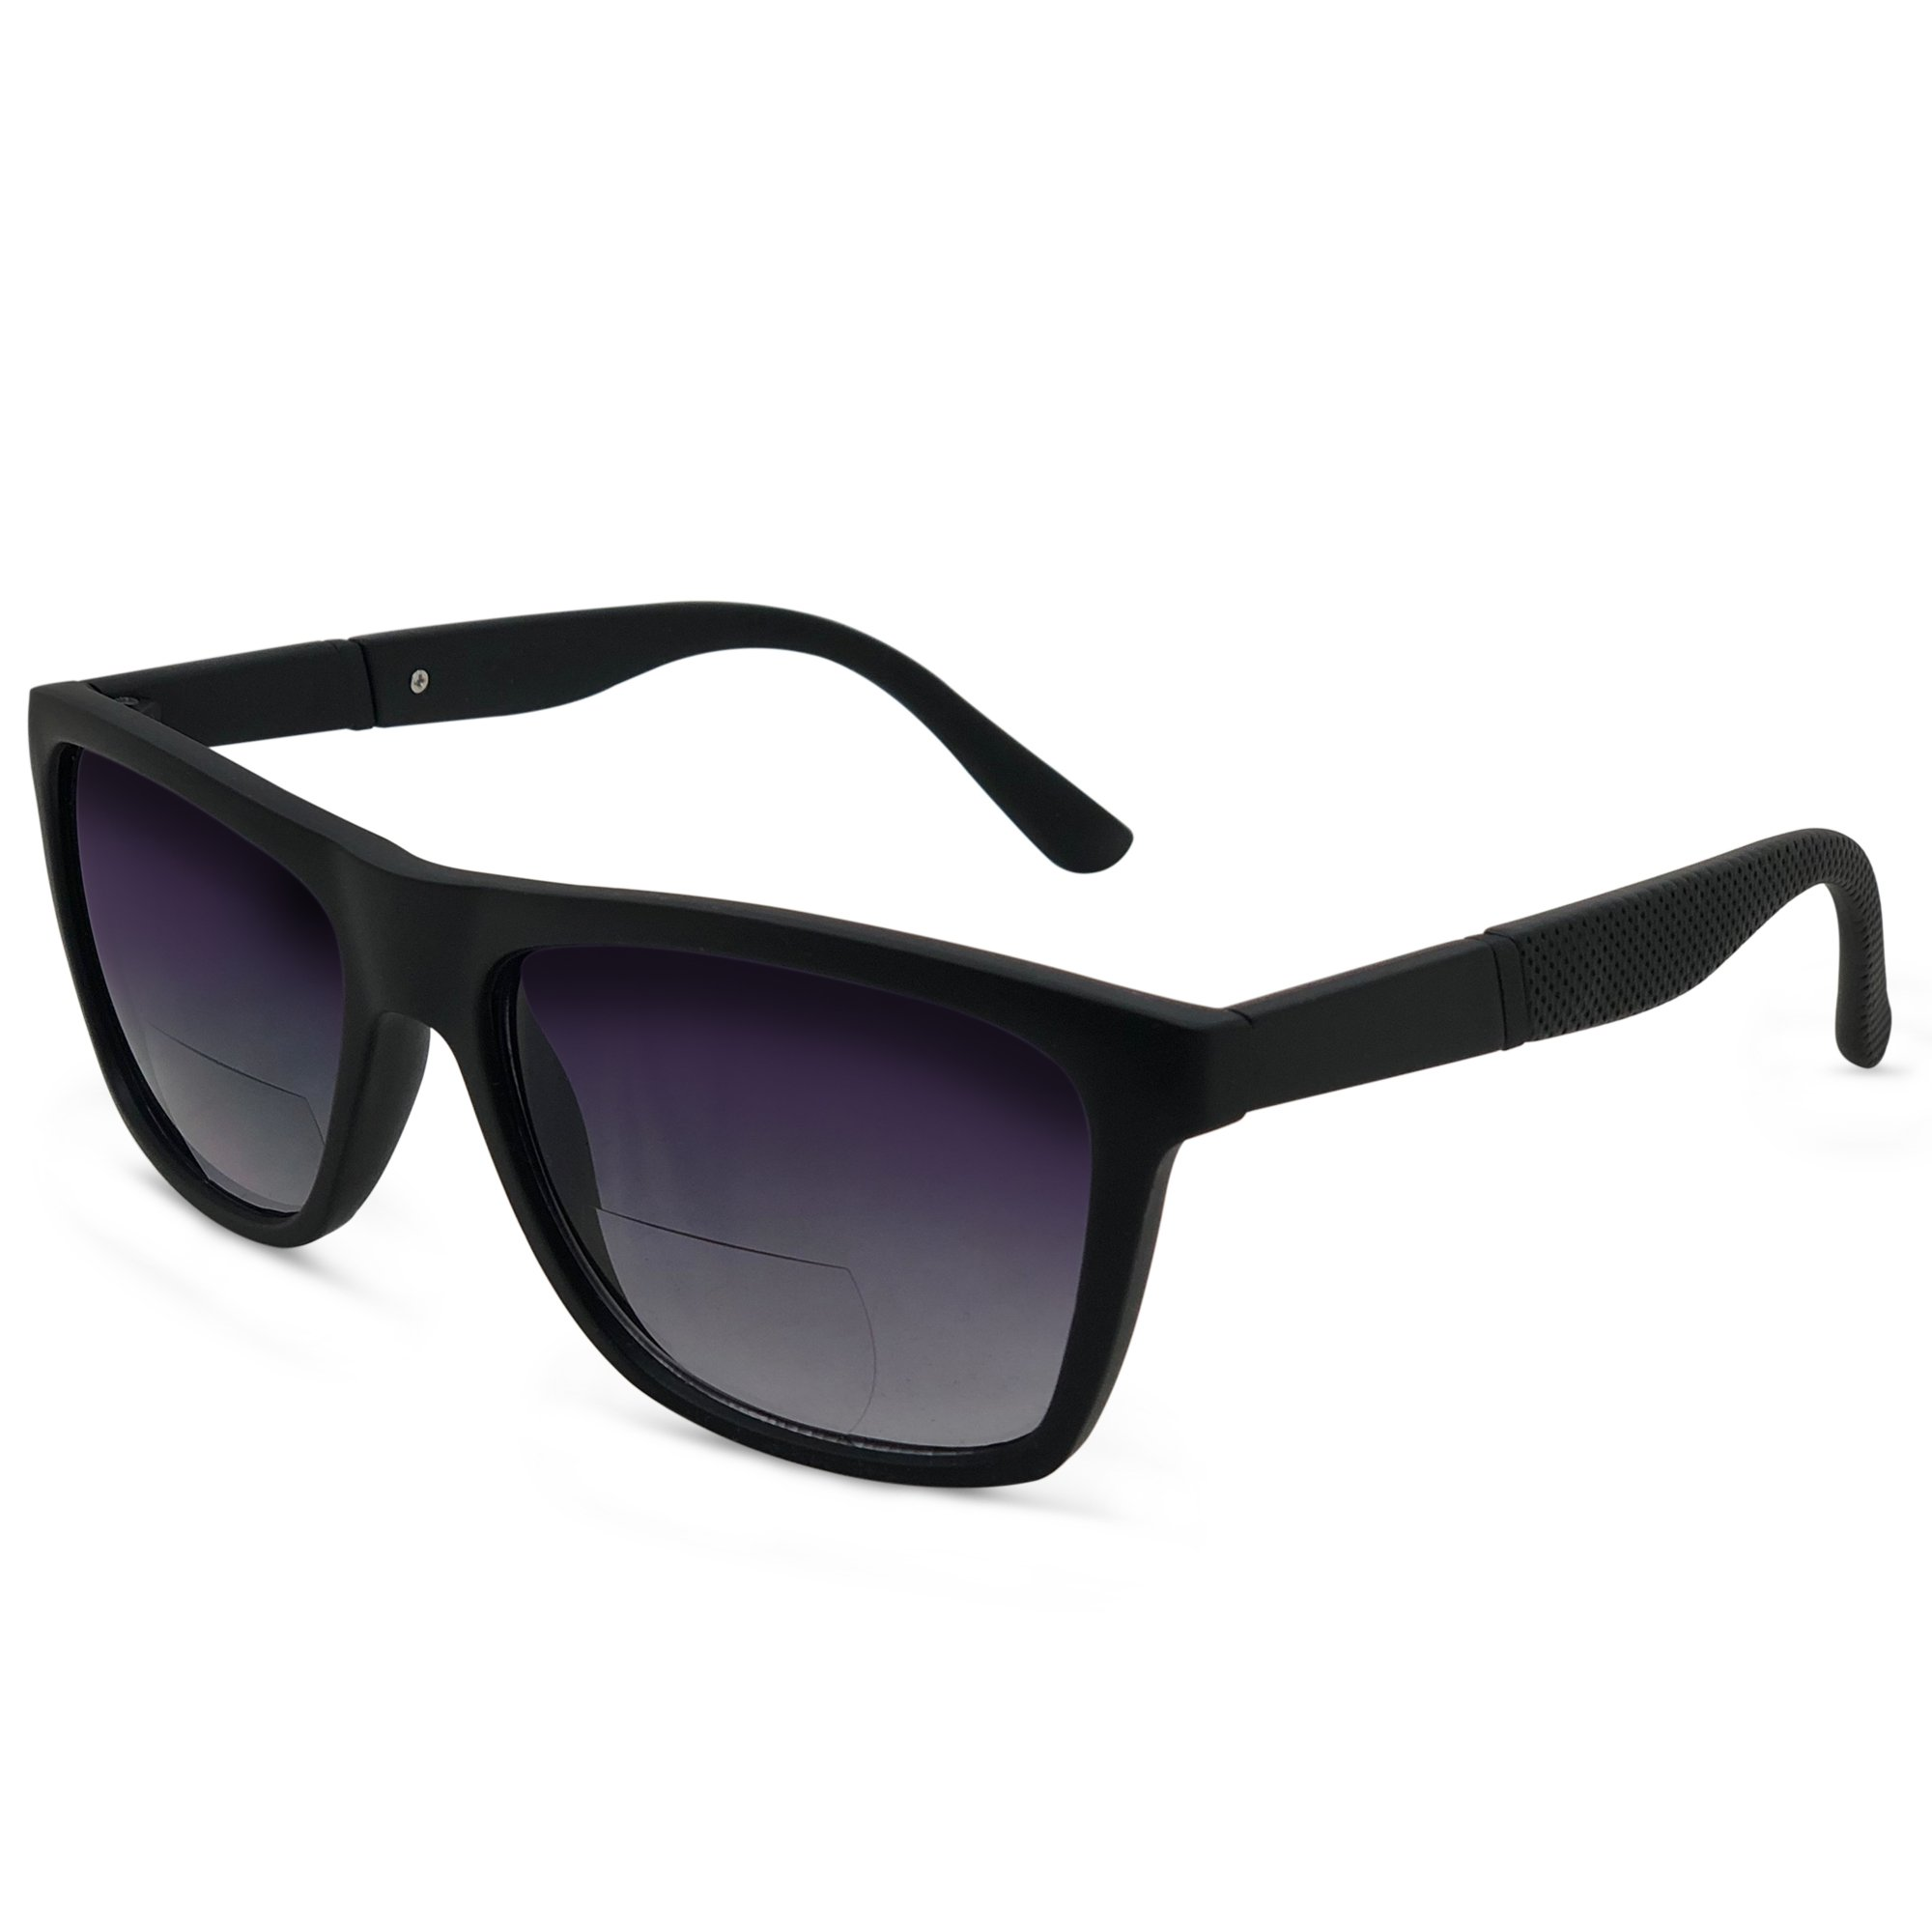 In Style Eyes Amor Nearly No Line Bifocal Wayfarer Sunglasses Black 3.50 by In Style Eyes